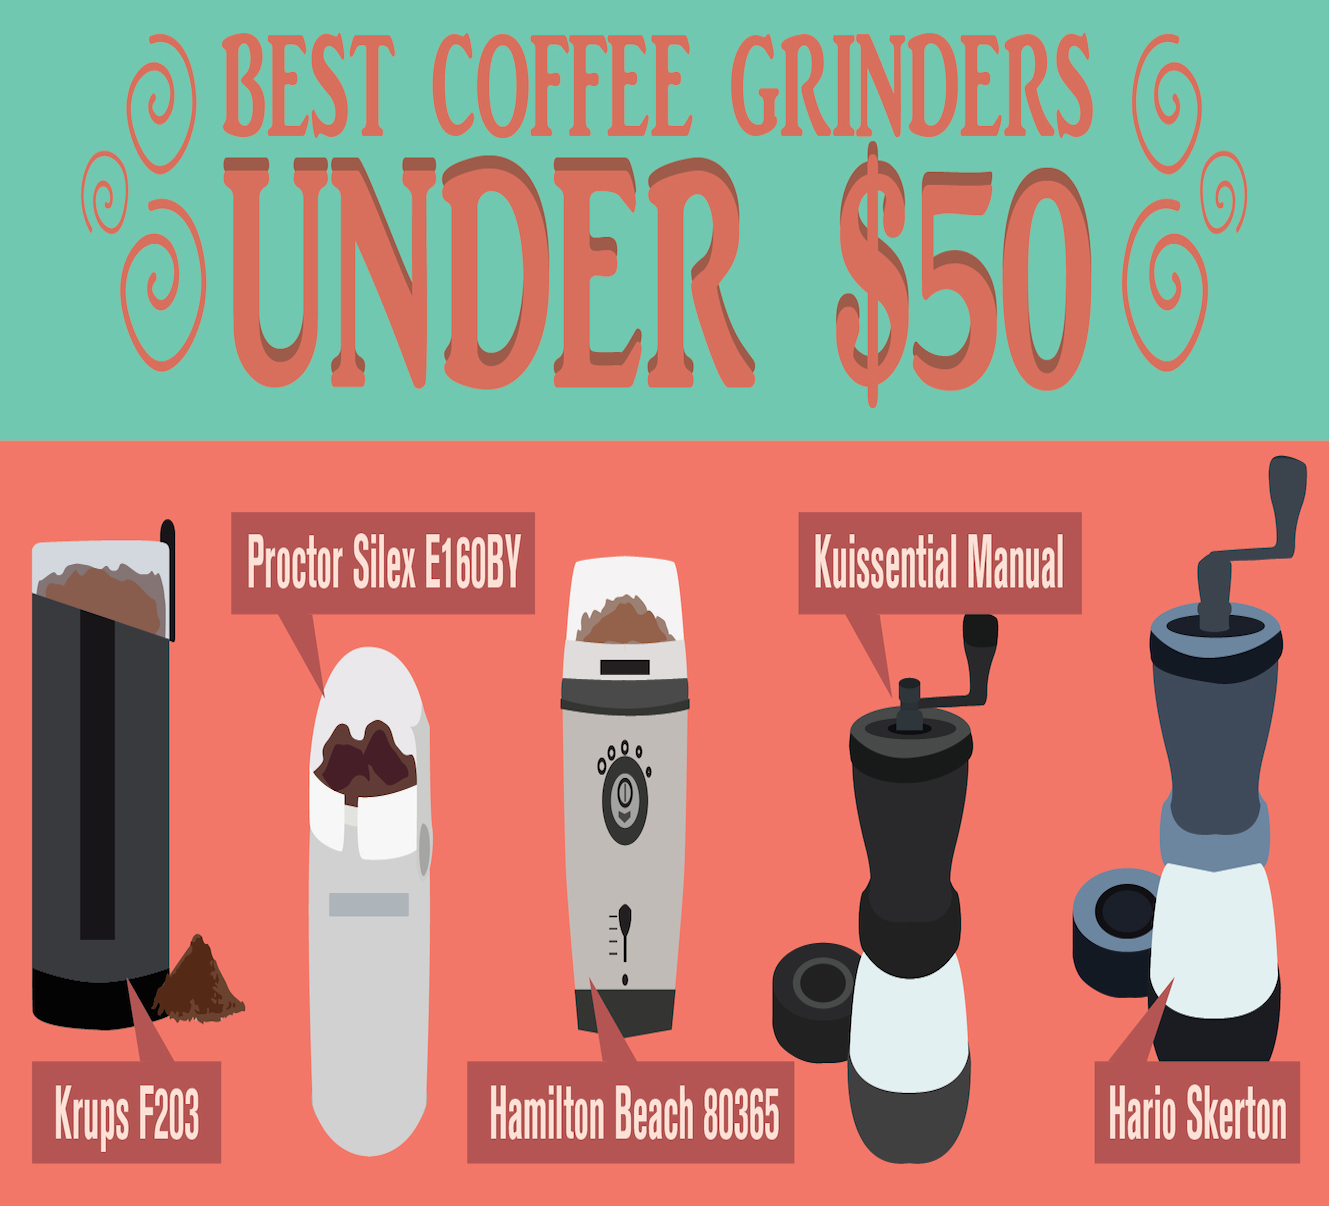 Best Coffee Maker Less Than Usd 50 : And the best coffee grinder for less than USD 50 is...